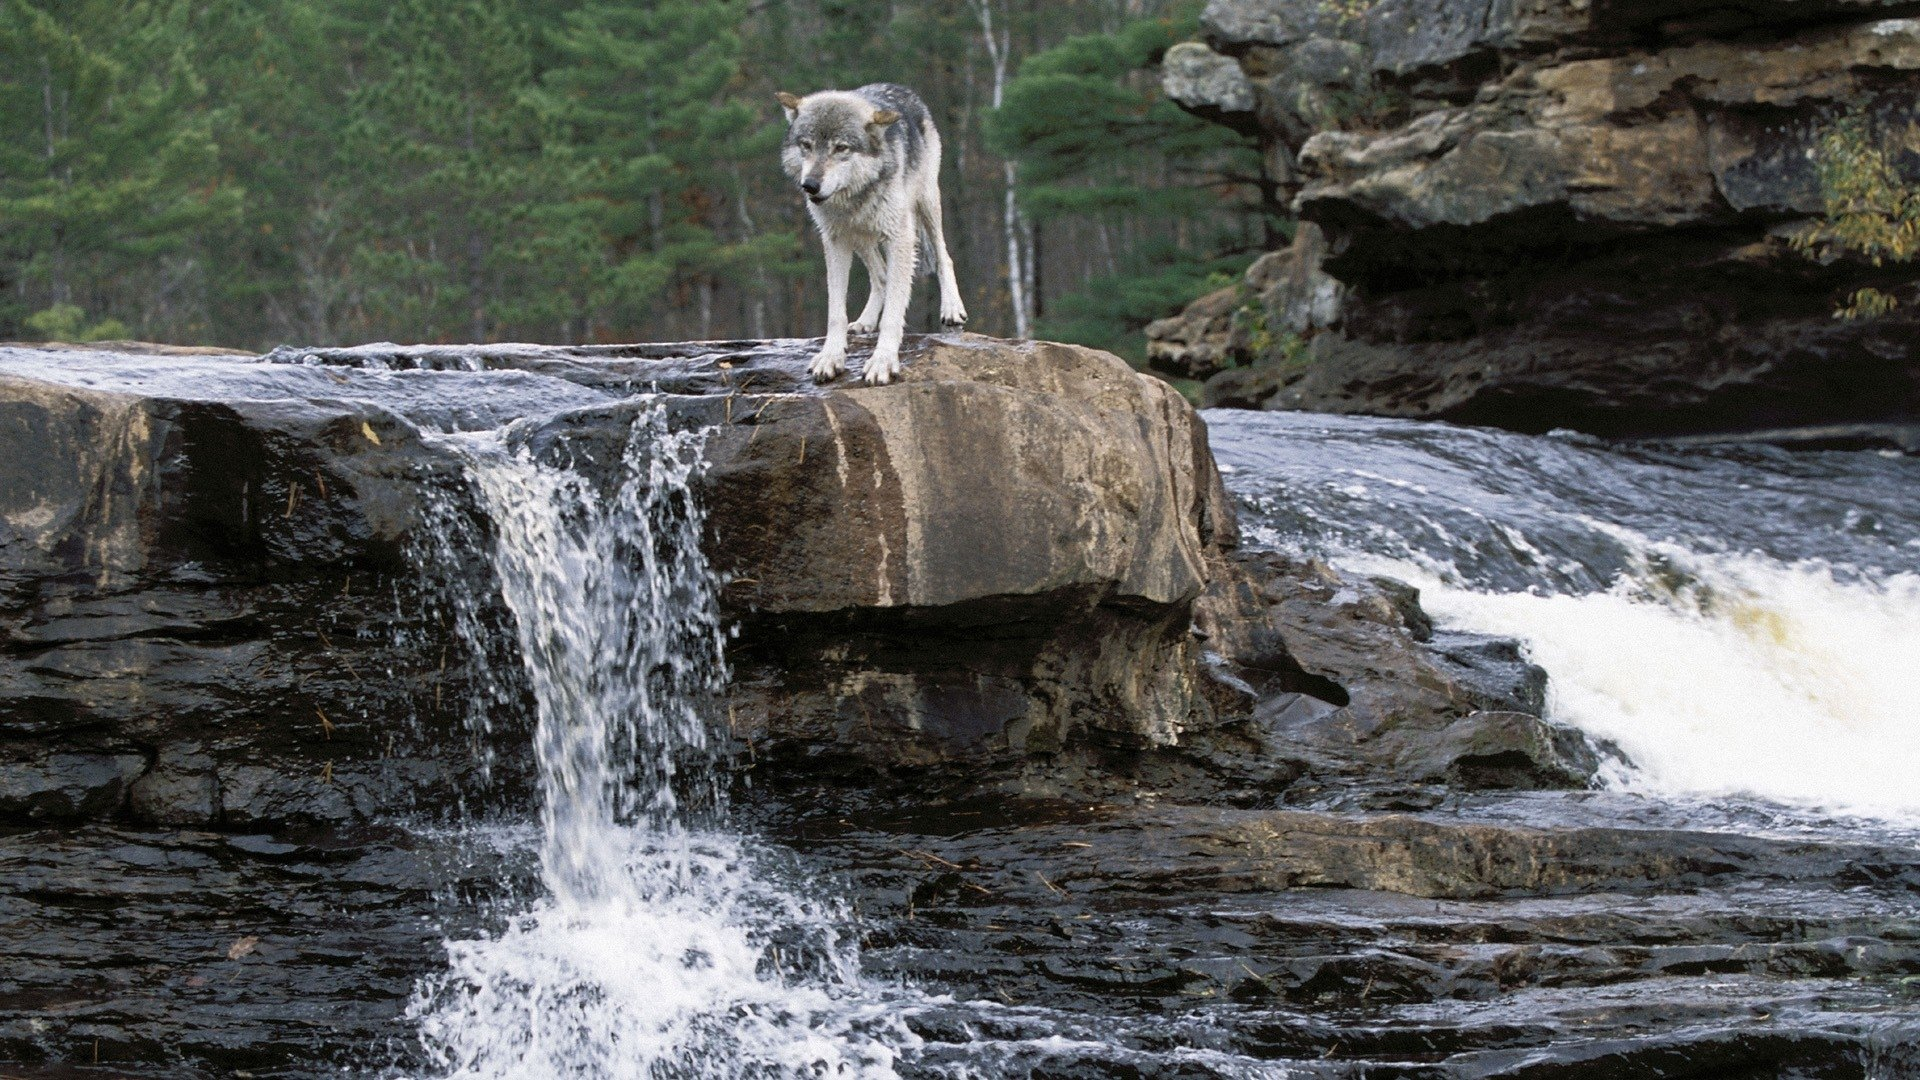 Cool Wallpapers Water Fall Loup Full Hd Fond D 233 Cran And Arri 232 Re Plan 1920x1080